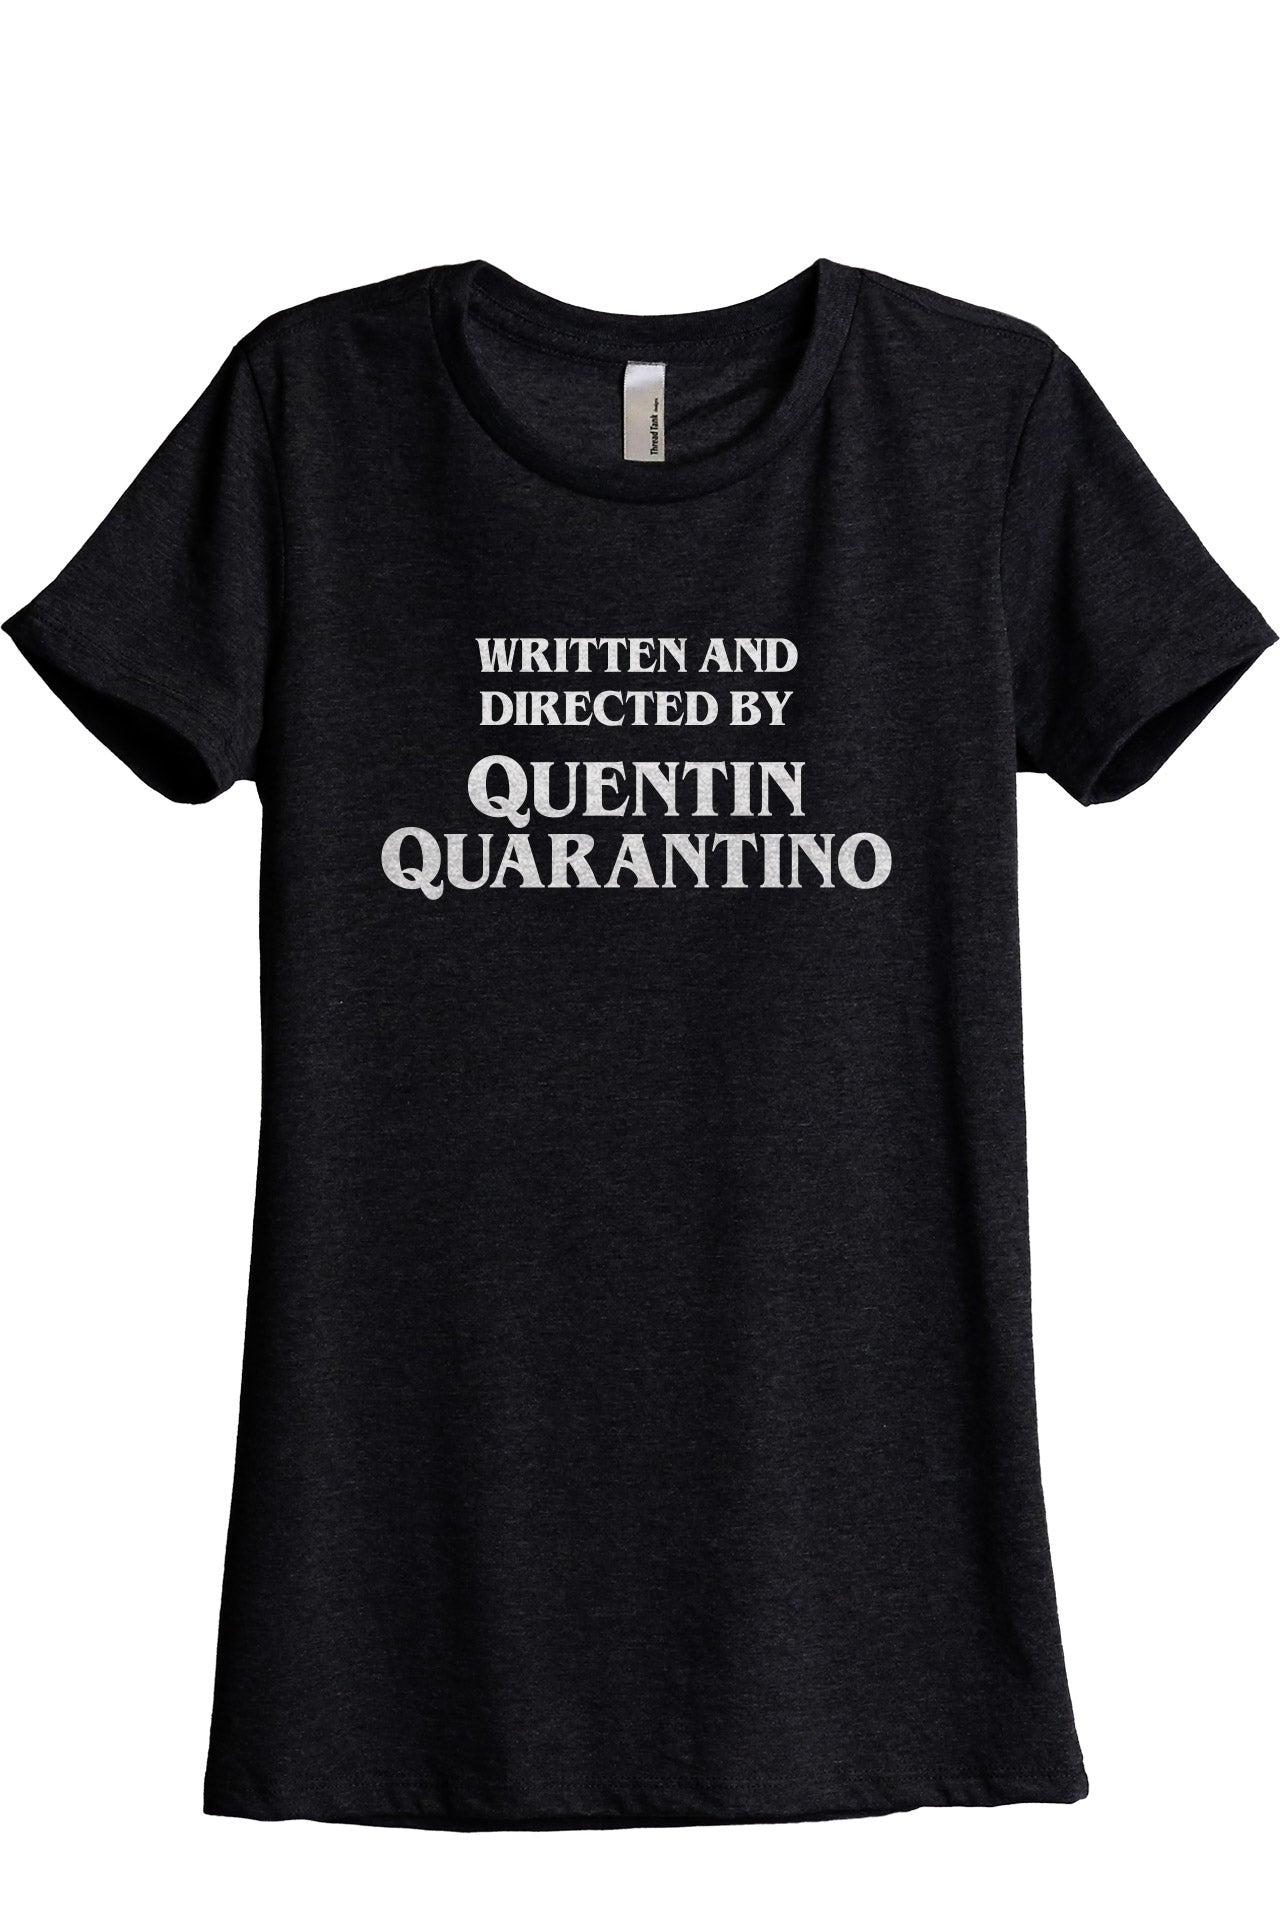 Written And Directed By Quentin Quarantino Women's Relaxed Crewneck T-Shirt Top Tee Heather Black Grey